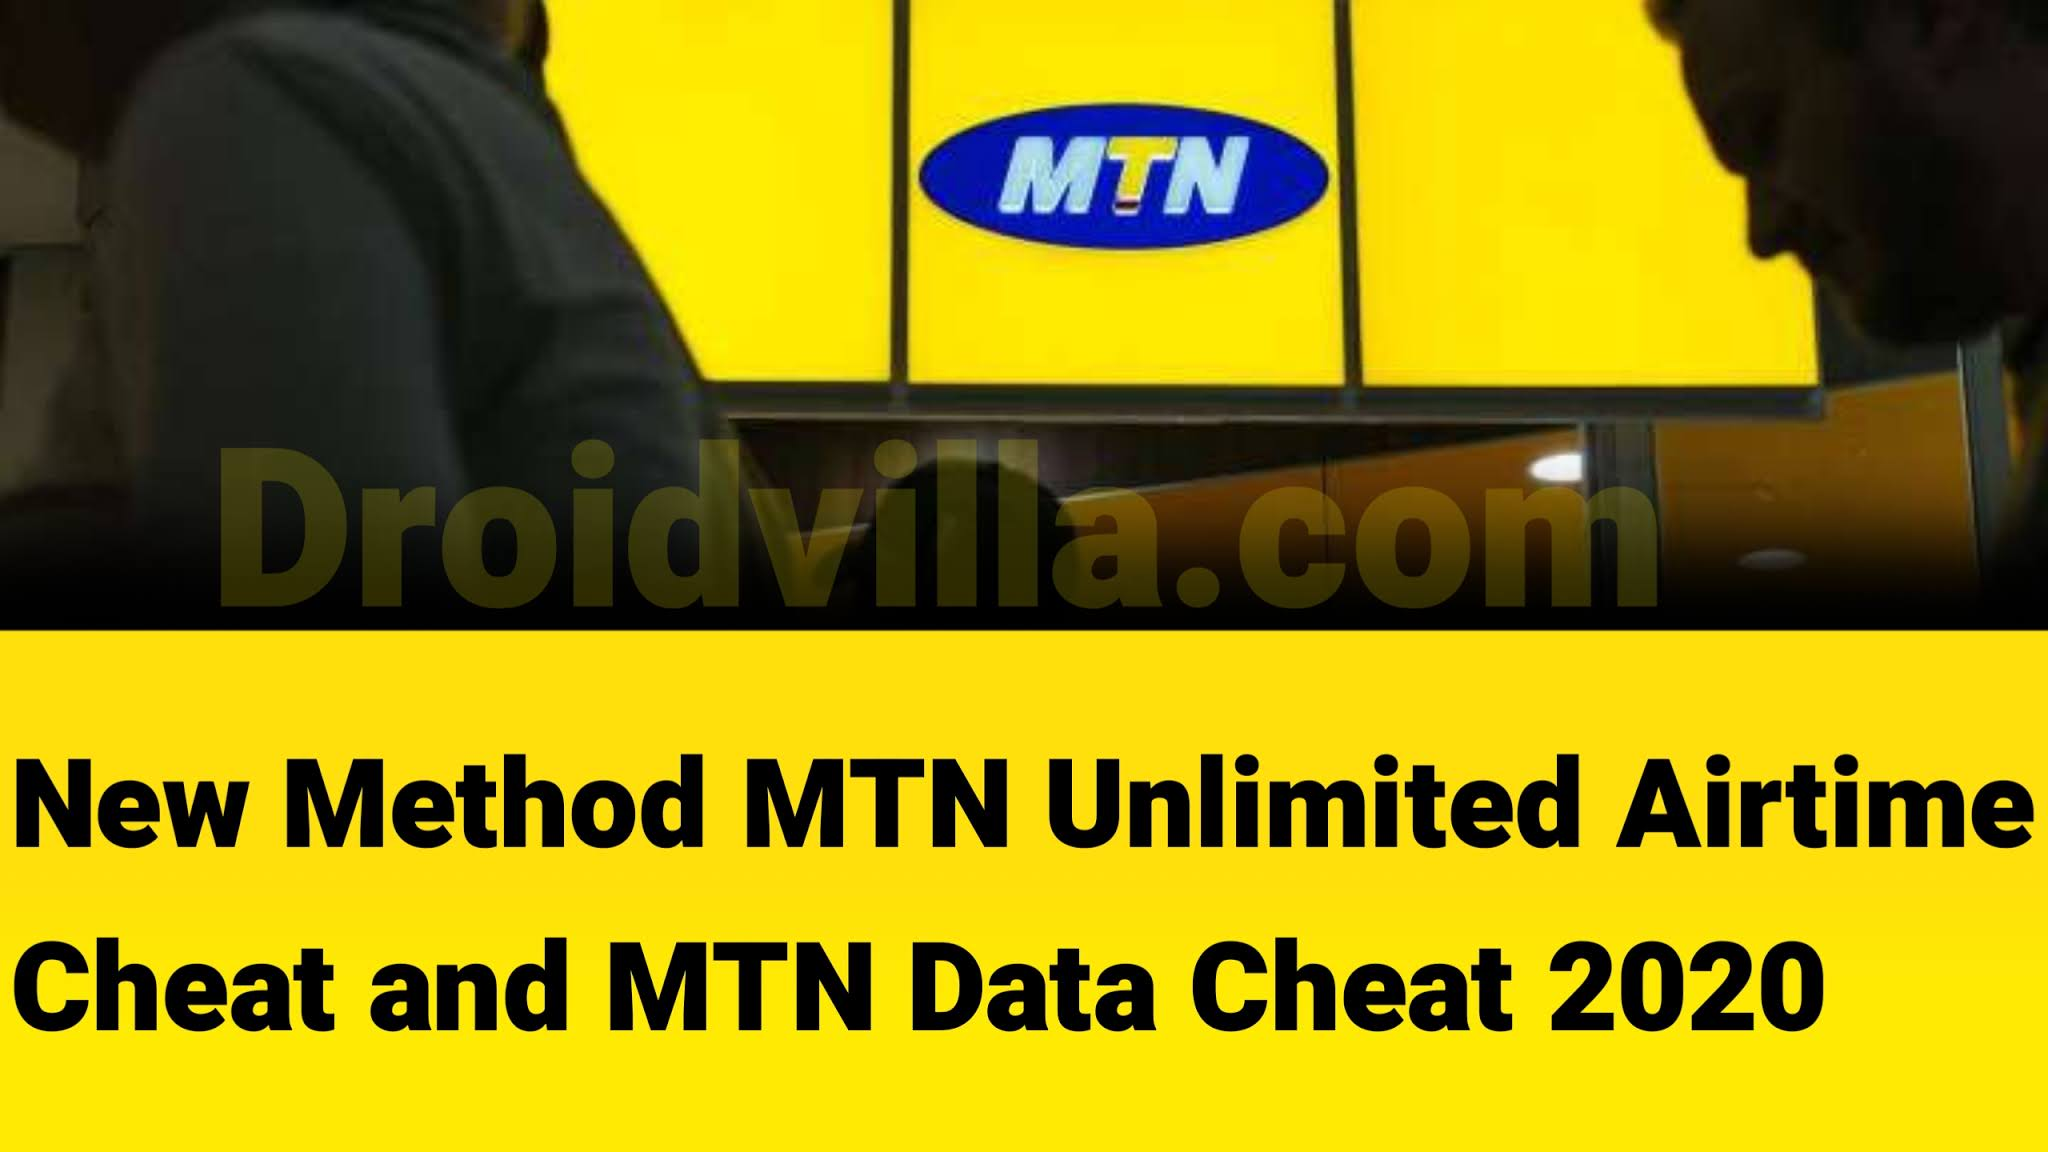 Mtn unlimited airtime and data cheat